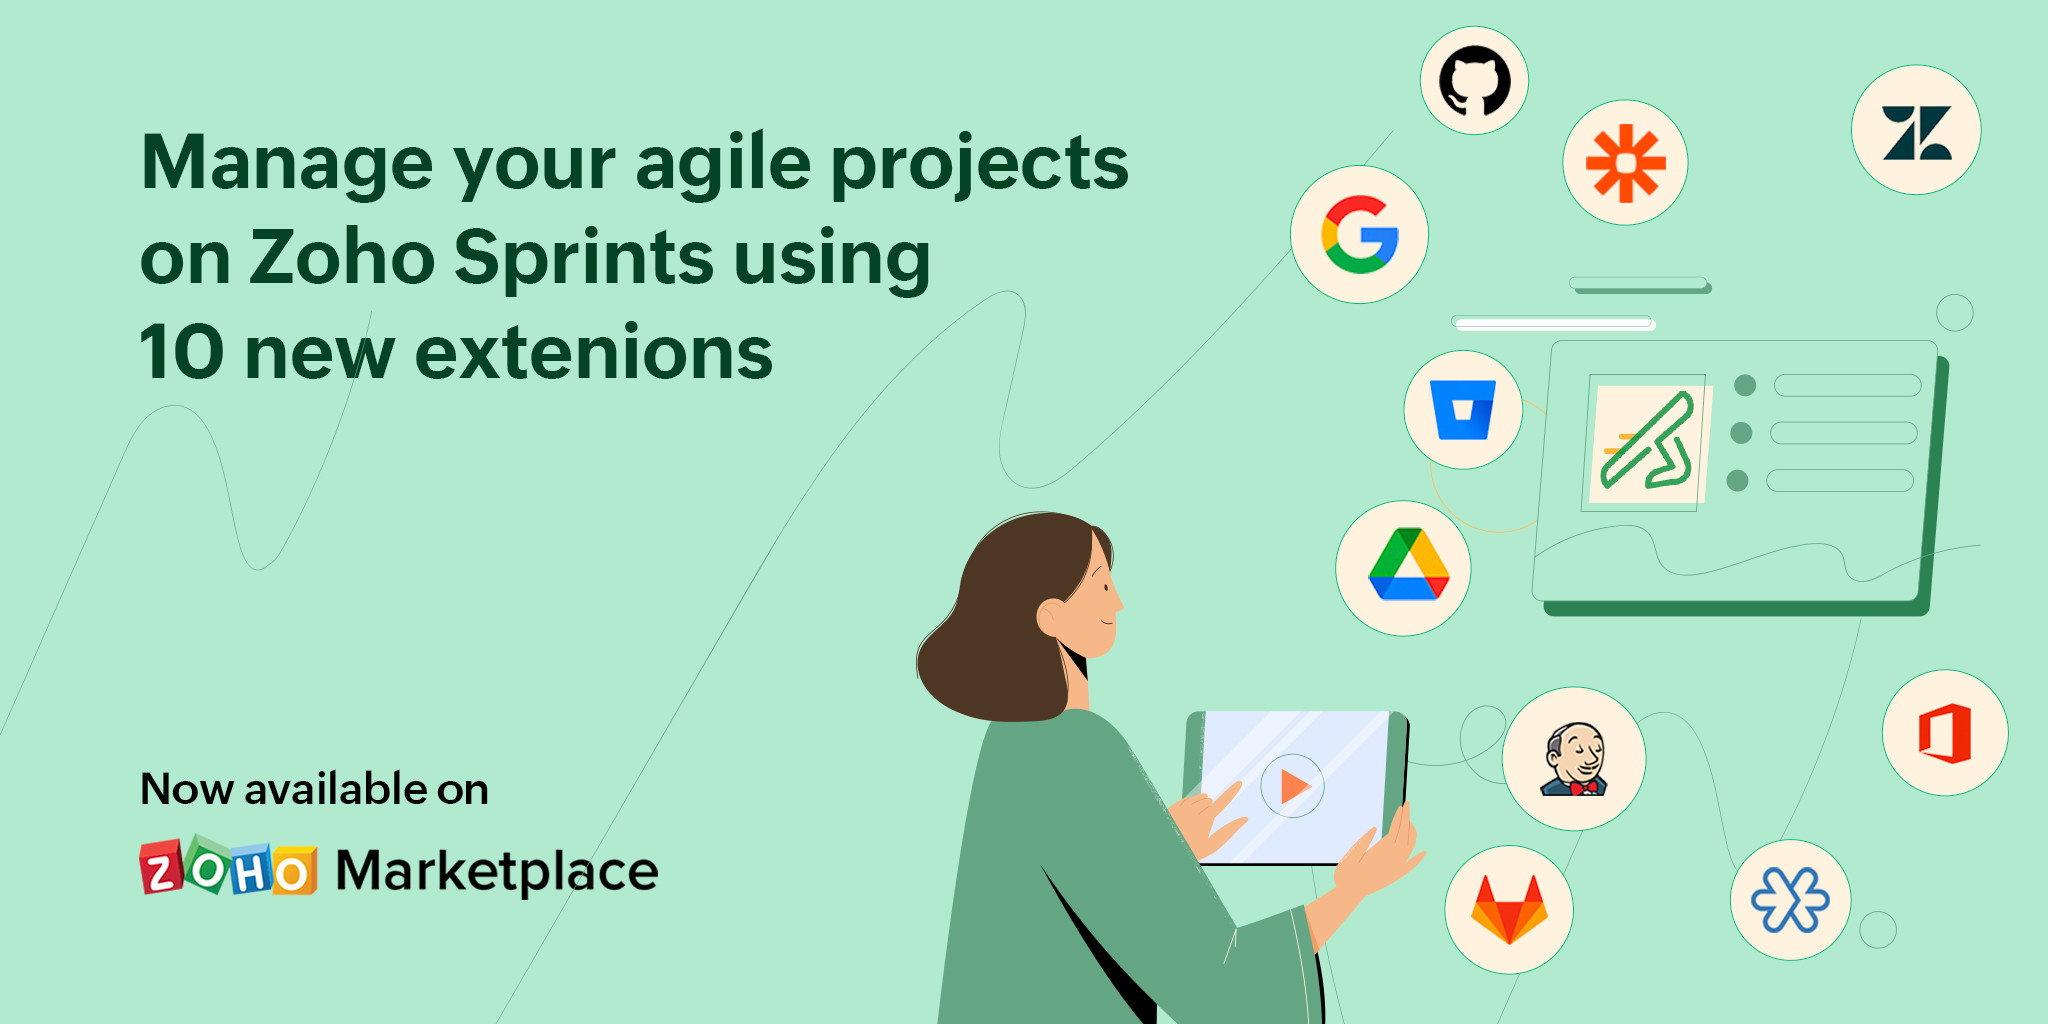 Introducing Google Drive, Zoho Meeting, Zendesk and 7 new extensions for Zoho Sprints